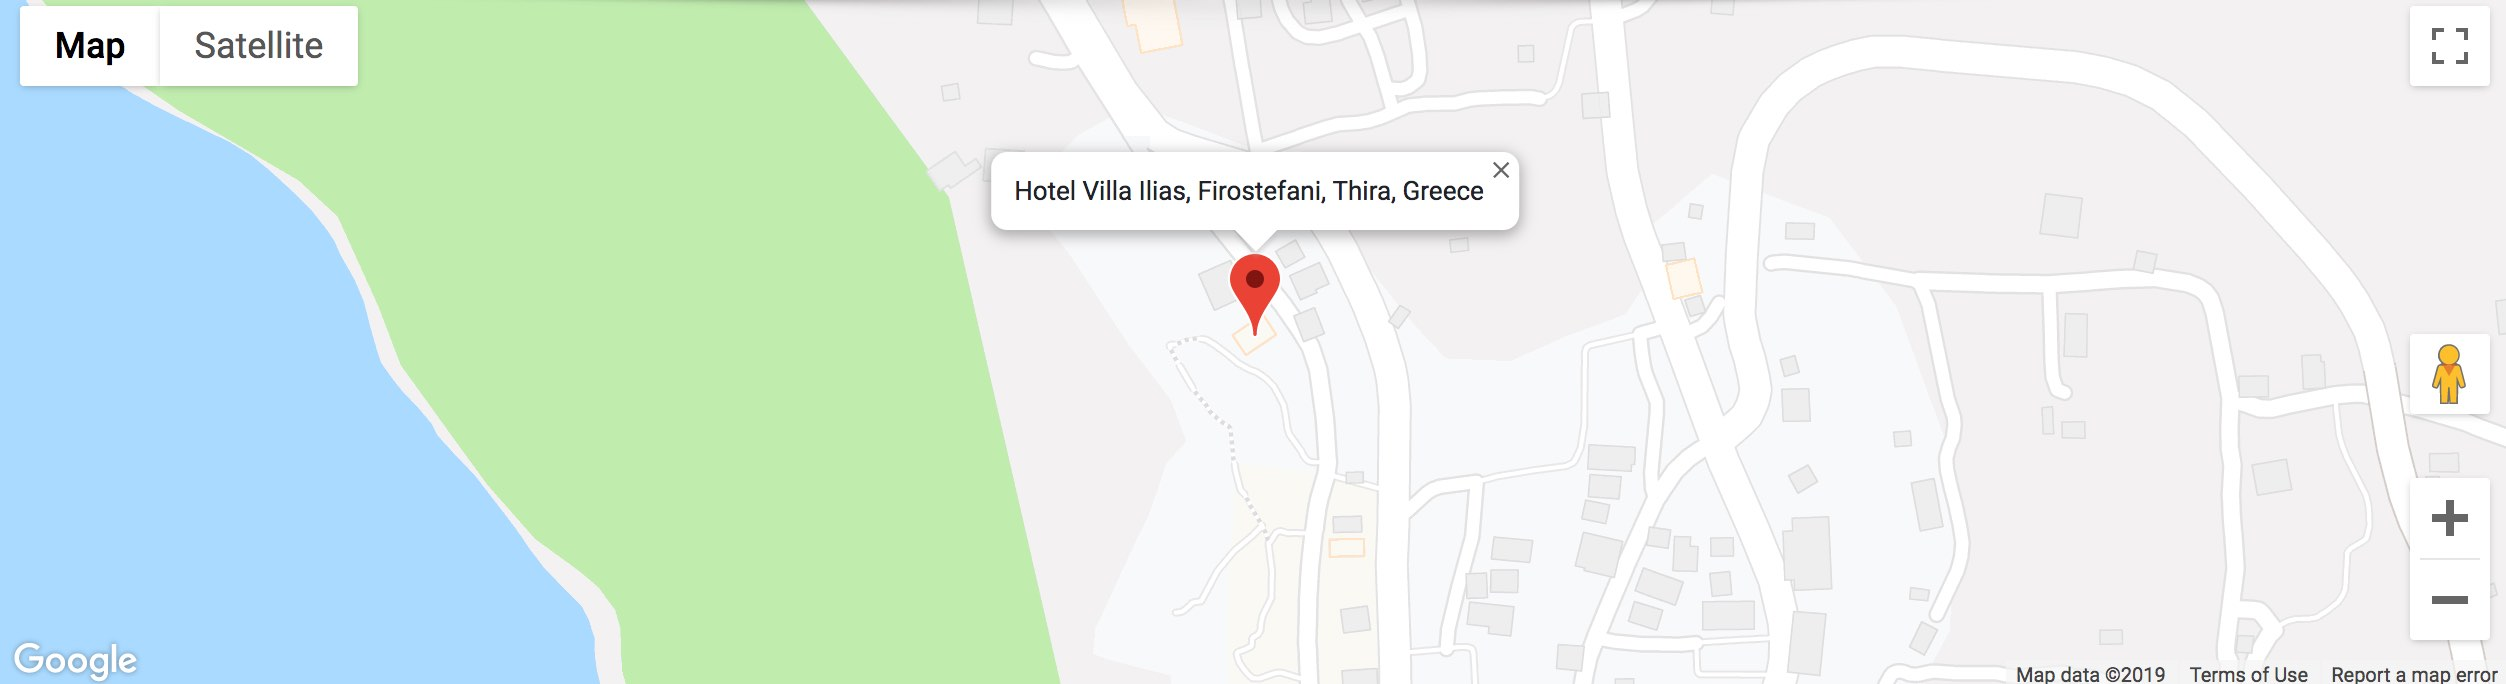 Hotel Villa Ilias Firostefani Greece map